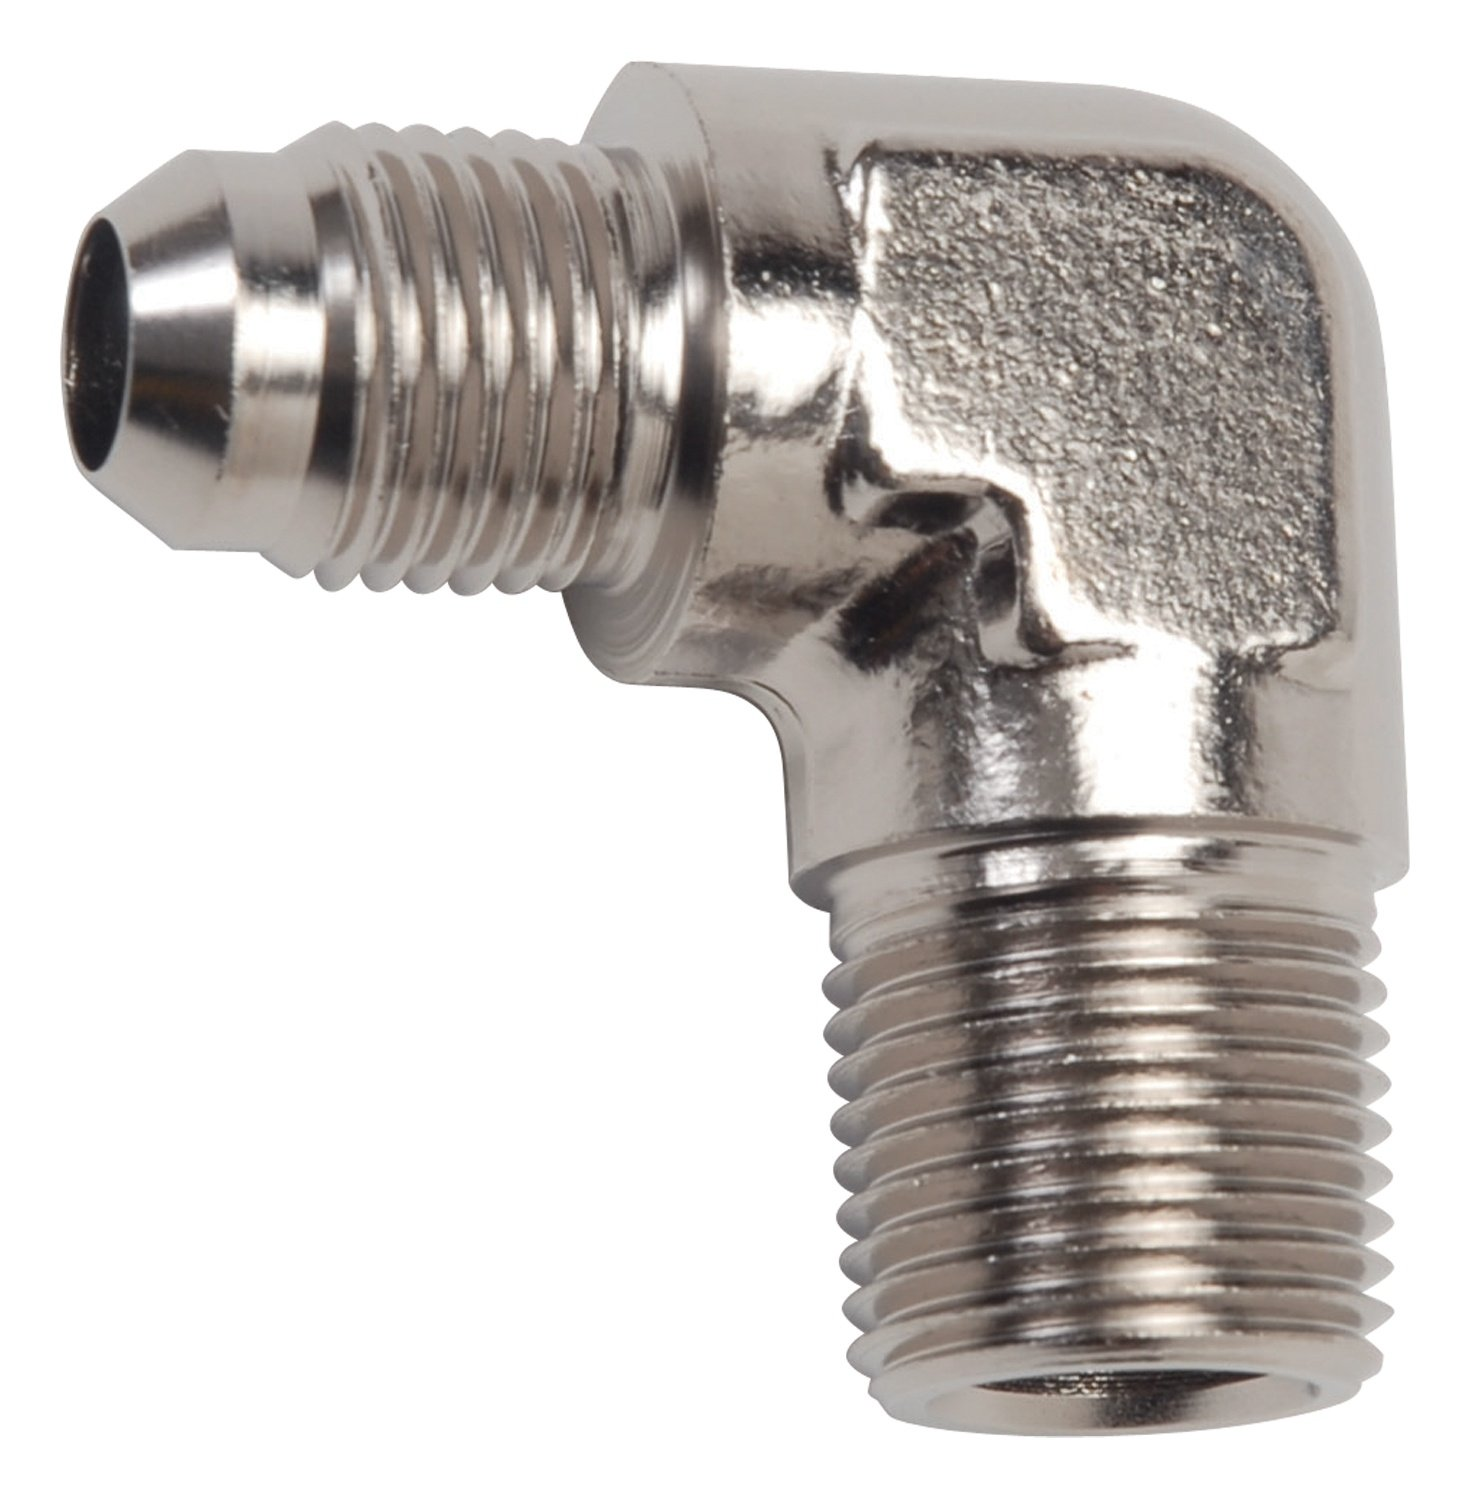 Russell 660831 -6 AN 90 Degree Flare to Pipe Adapter Fitting